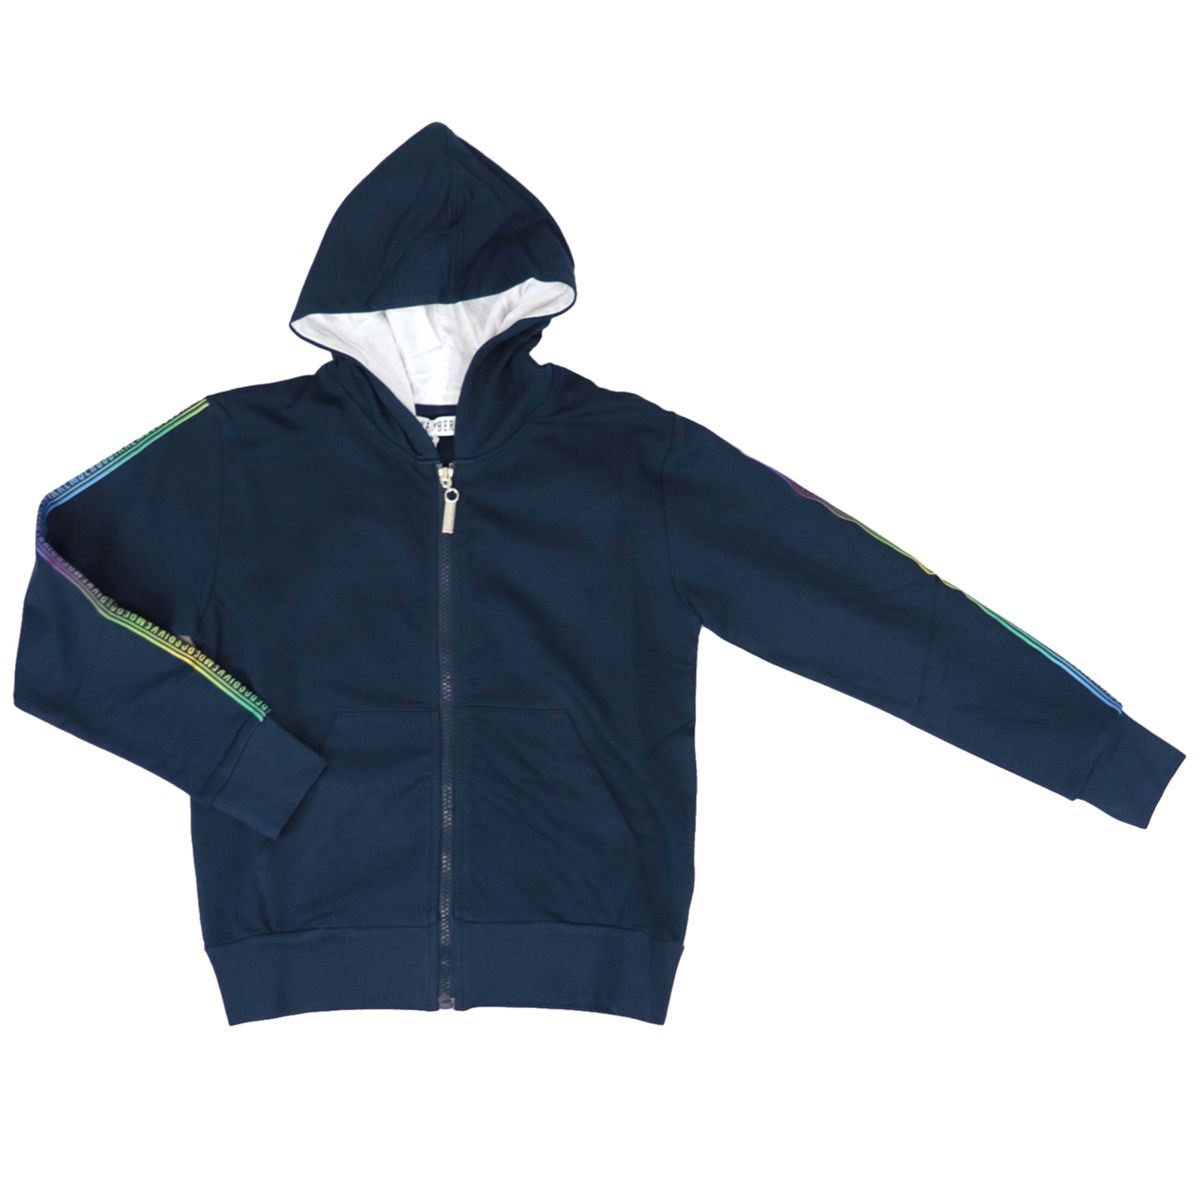 Cotton sweatshirt with hood and multicolor logo on sleeves Blue Bikkembergs